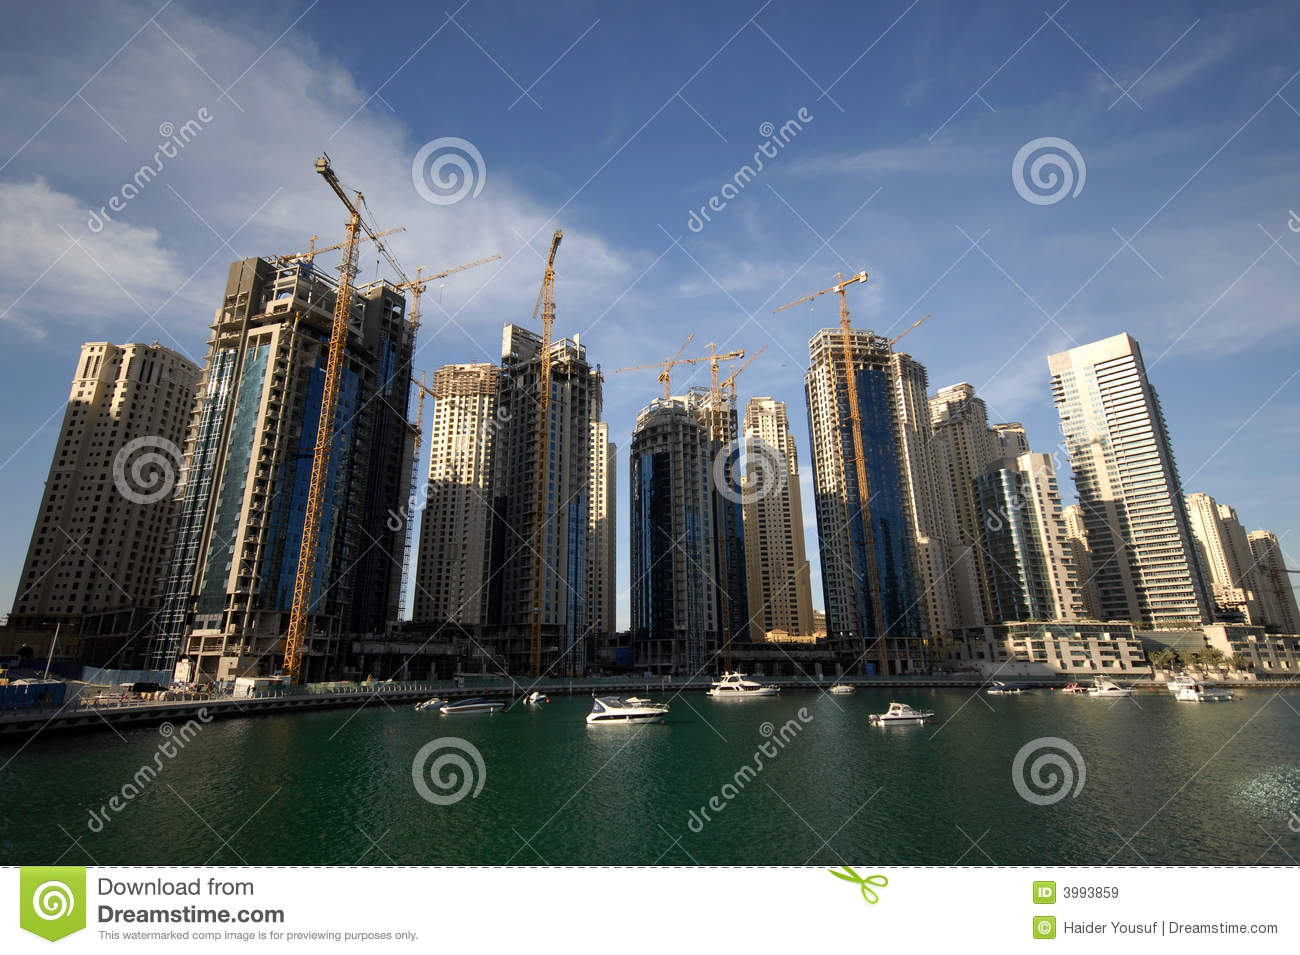 Dubai Waterfront Construction